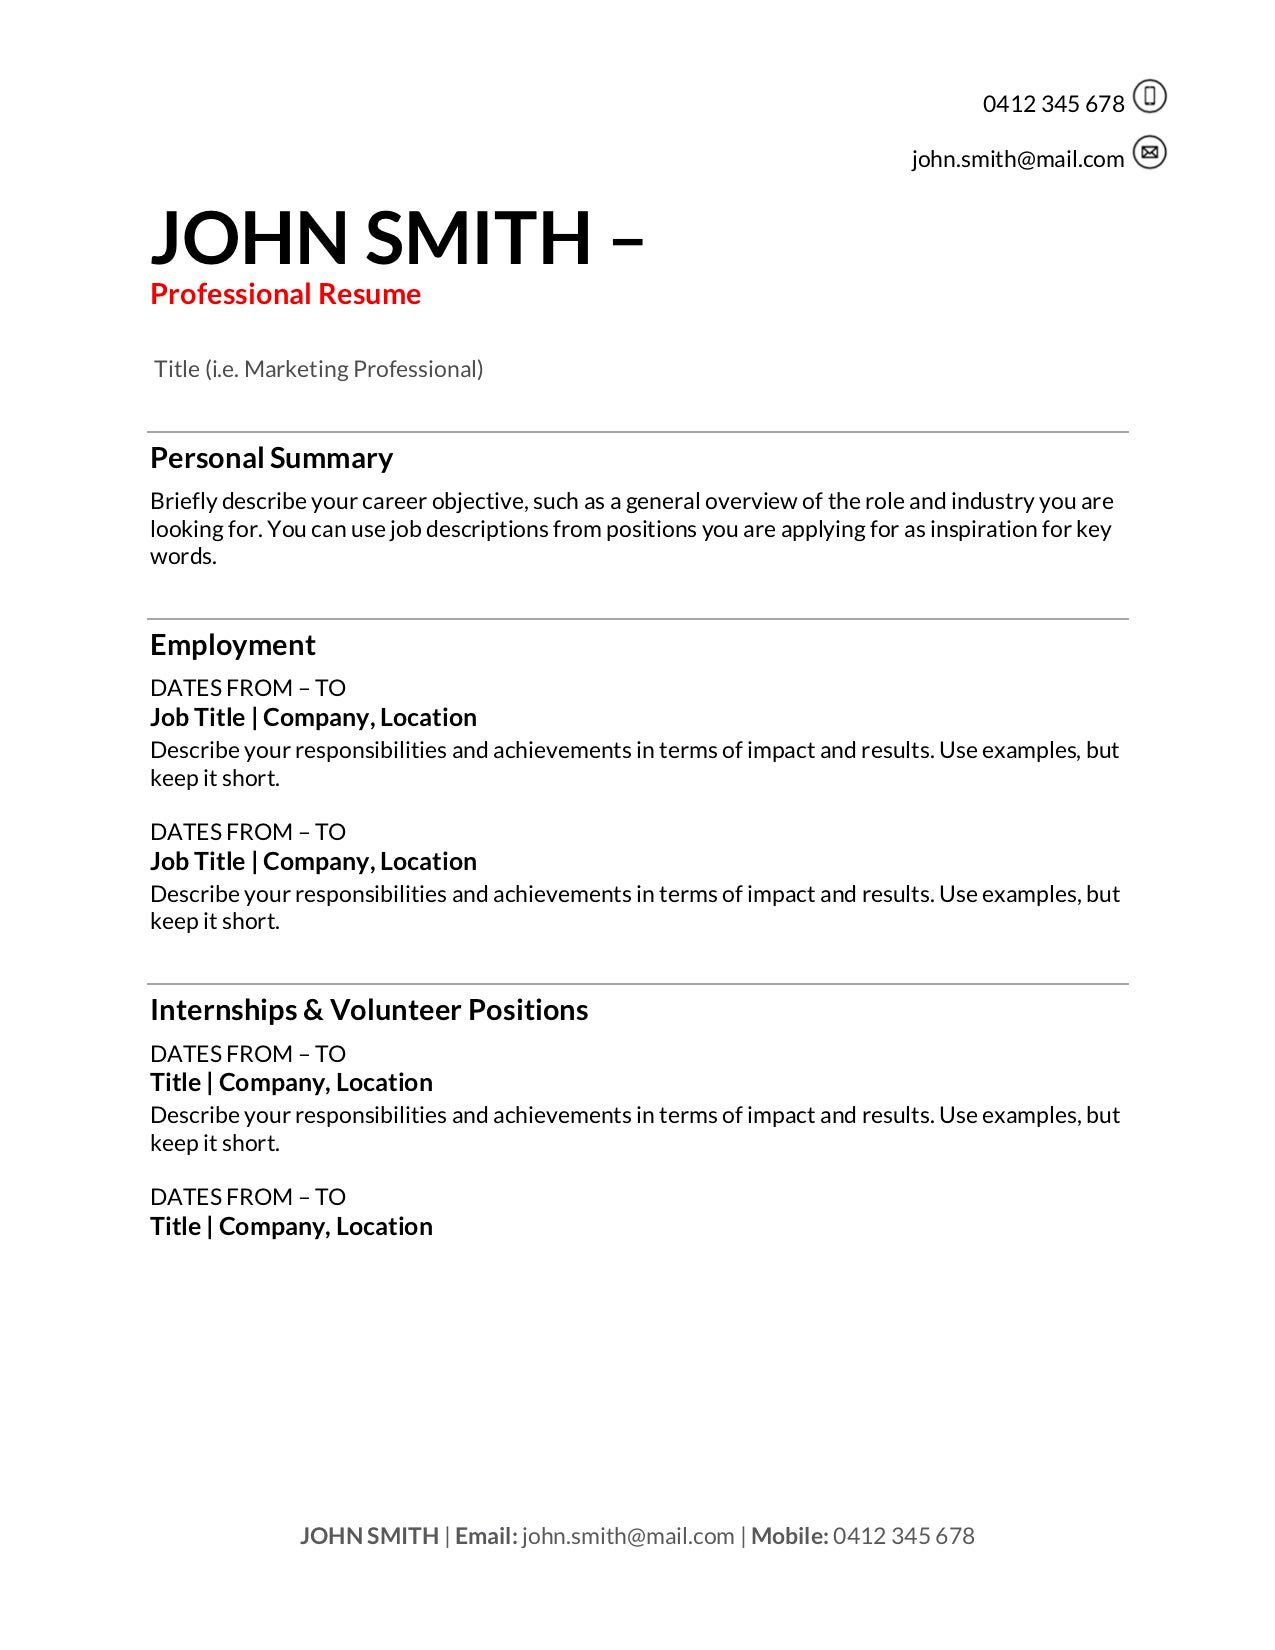 006 Impressive Resume Template For First Job High Def  Student Australia After Time JobseekerFull